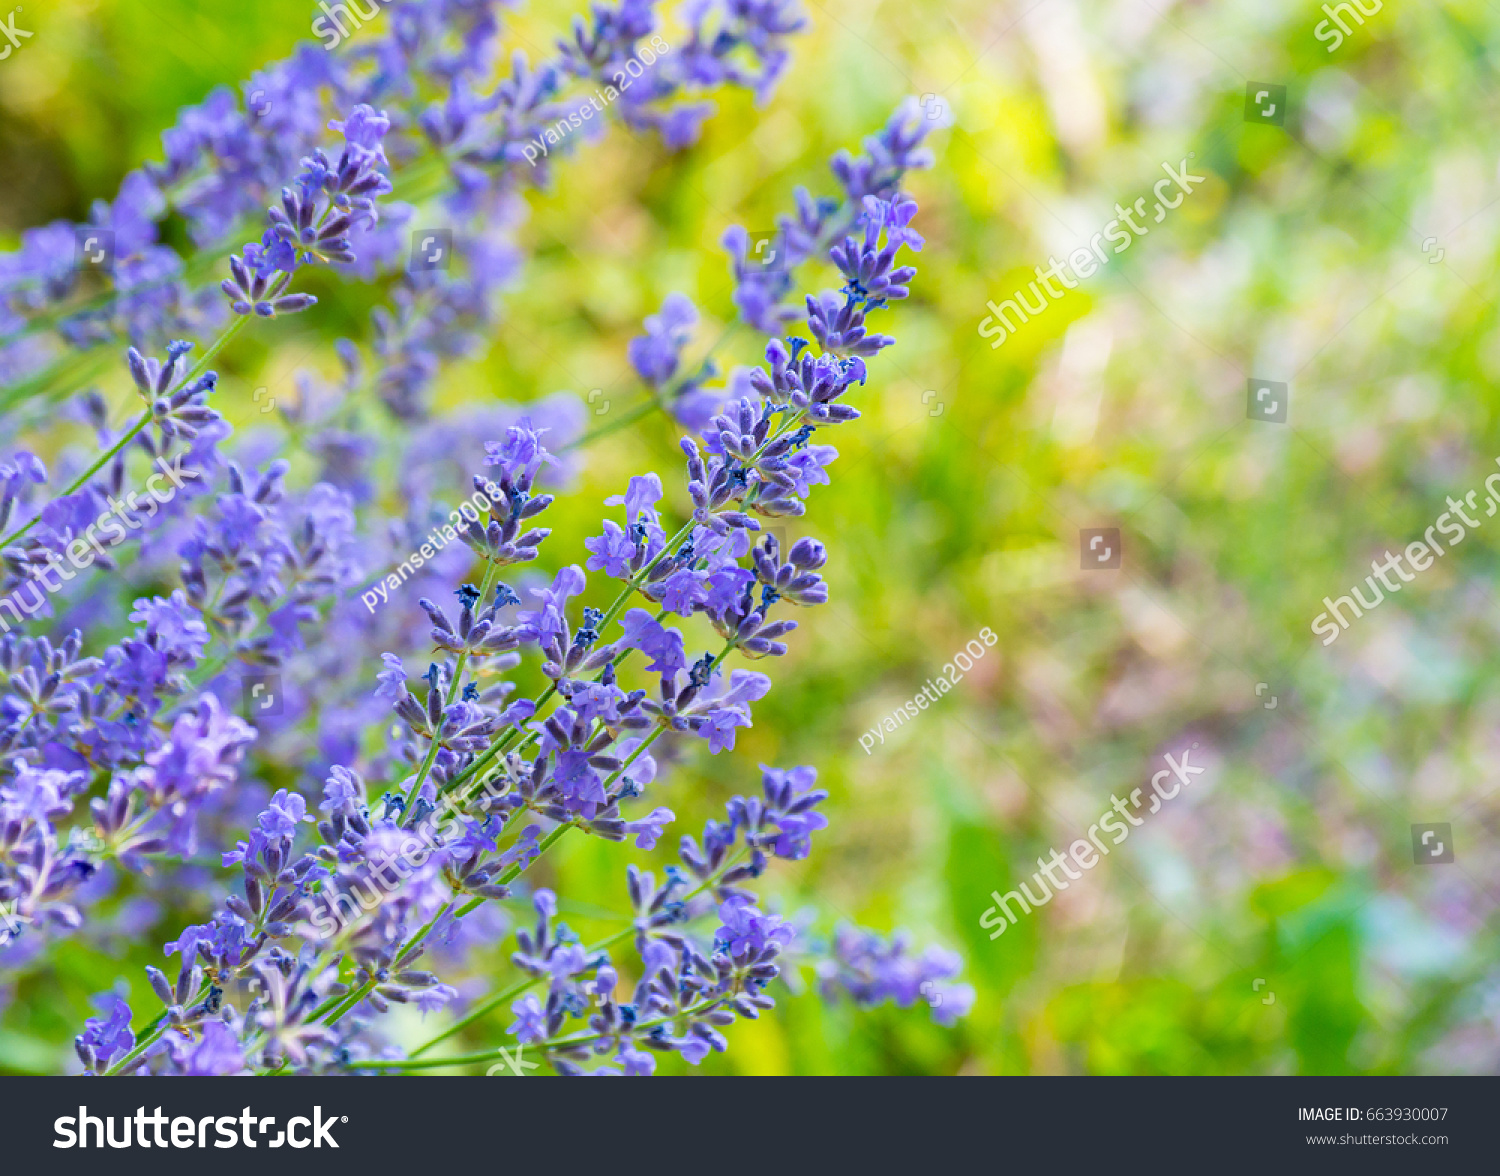 Beautiful lavender flowers shrub garden blurred stock photo royalty beautiful lavender flowers shrub in garden with blurred natural background izmirmasajfo